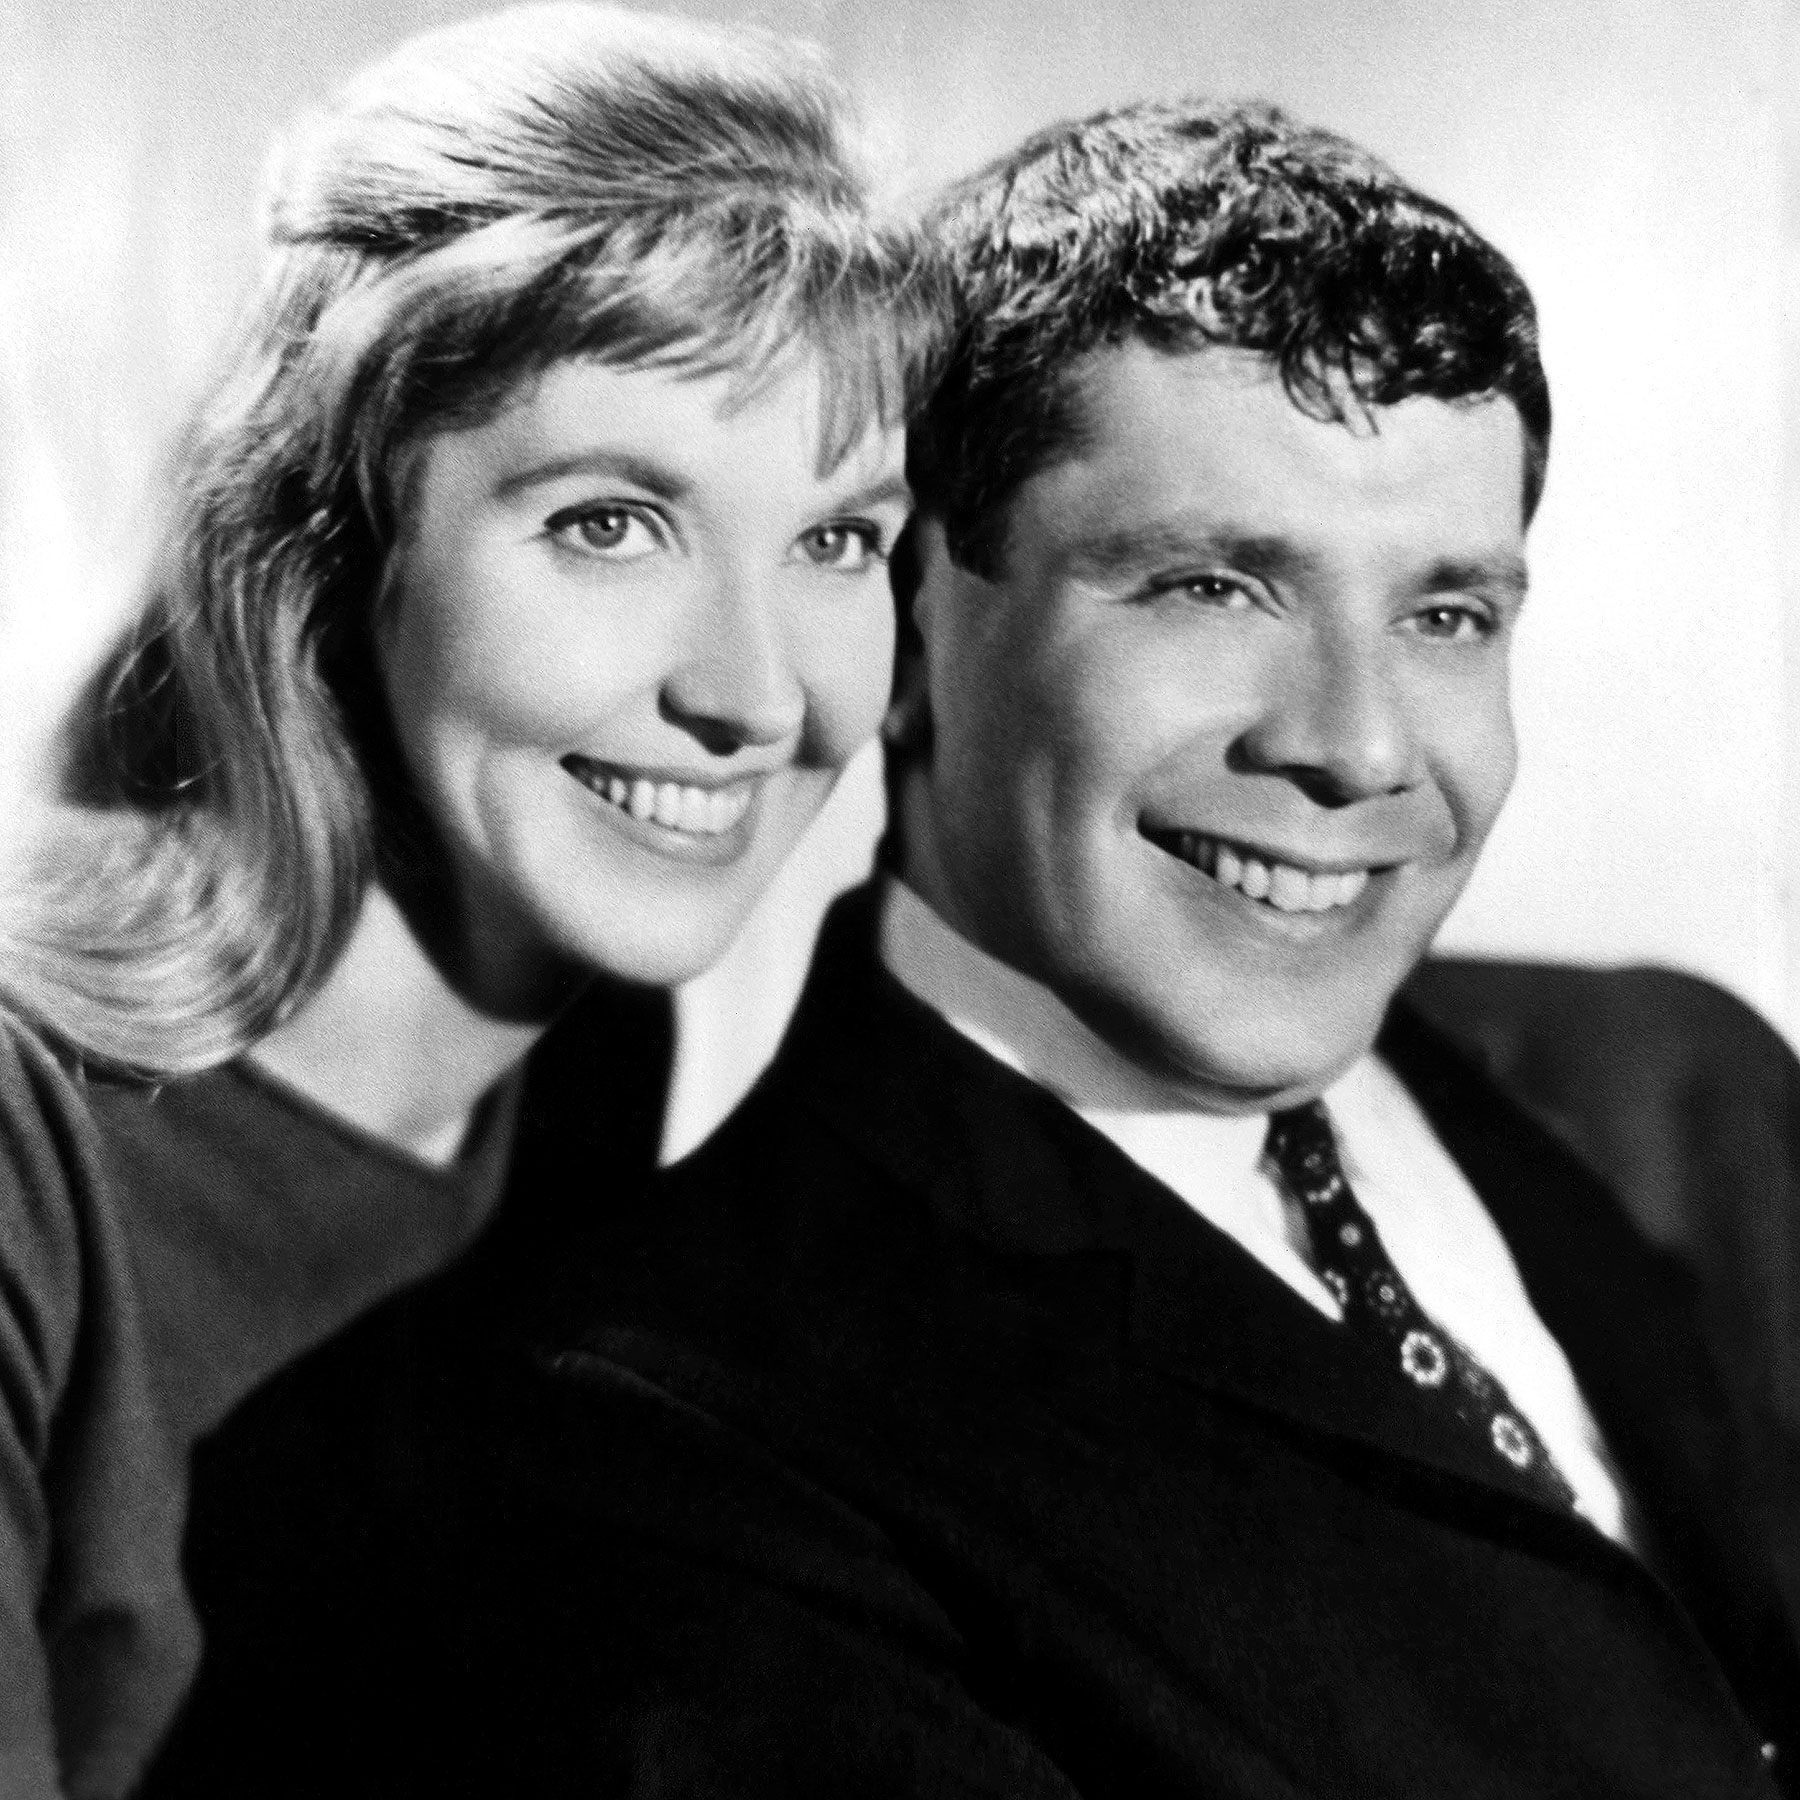 Stiller and Meara (Anne Meara, Jerry Stiller), ca. early 1960s